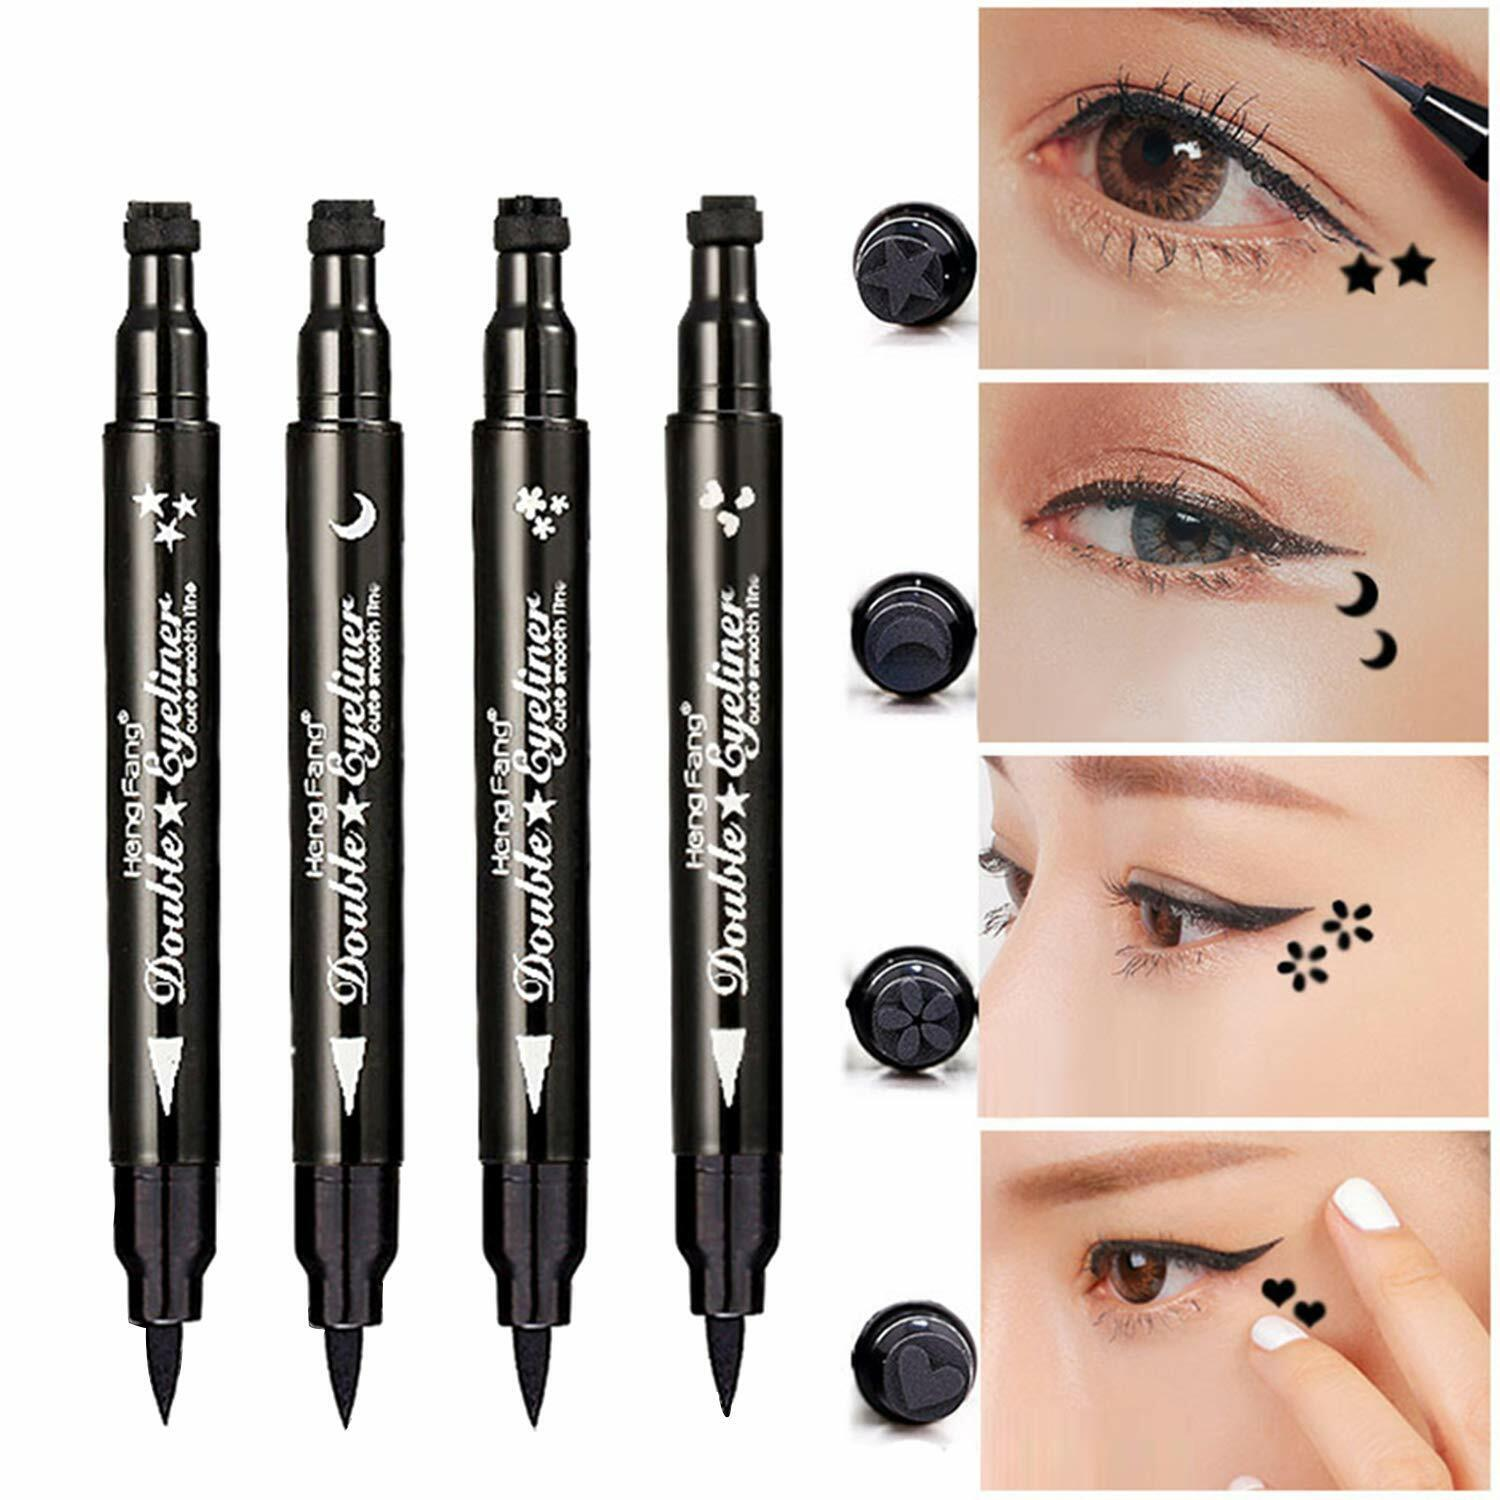 1 Ps Winged Stamp Eyeliner Waterproof Makeup Cosmetic Eye Liner Pencil Liquid US Eyeliner